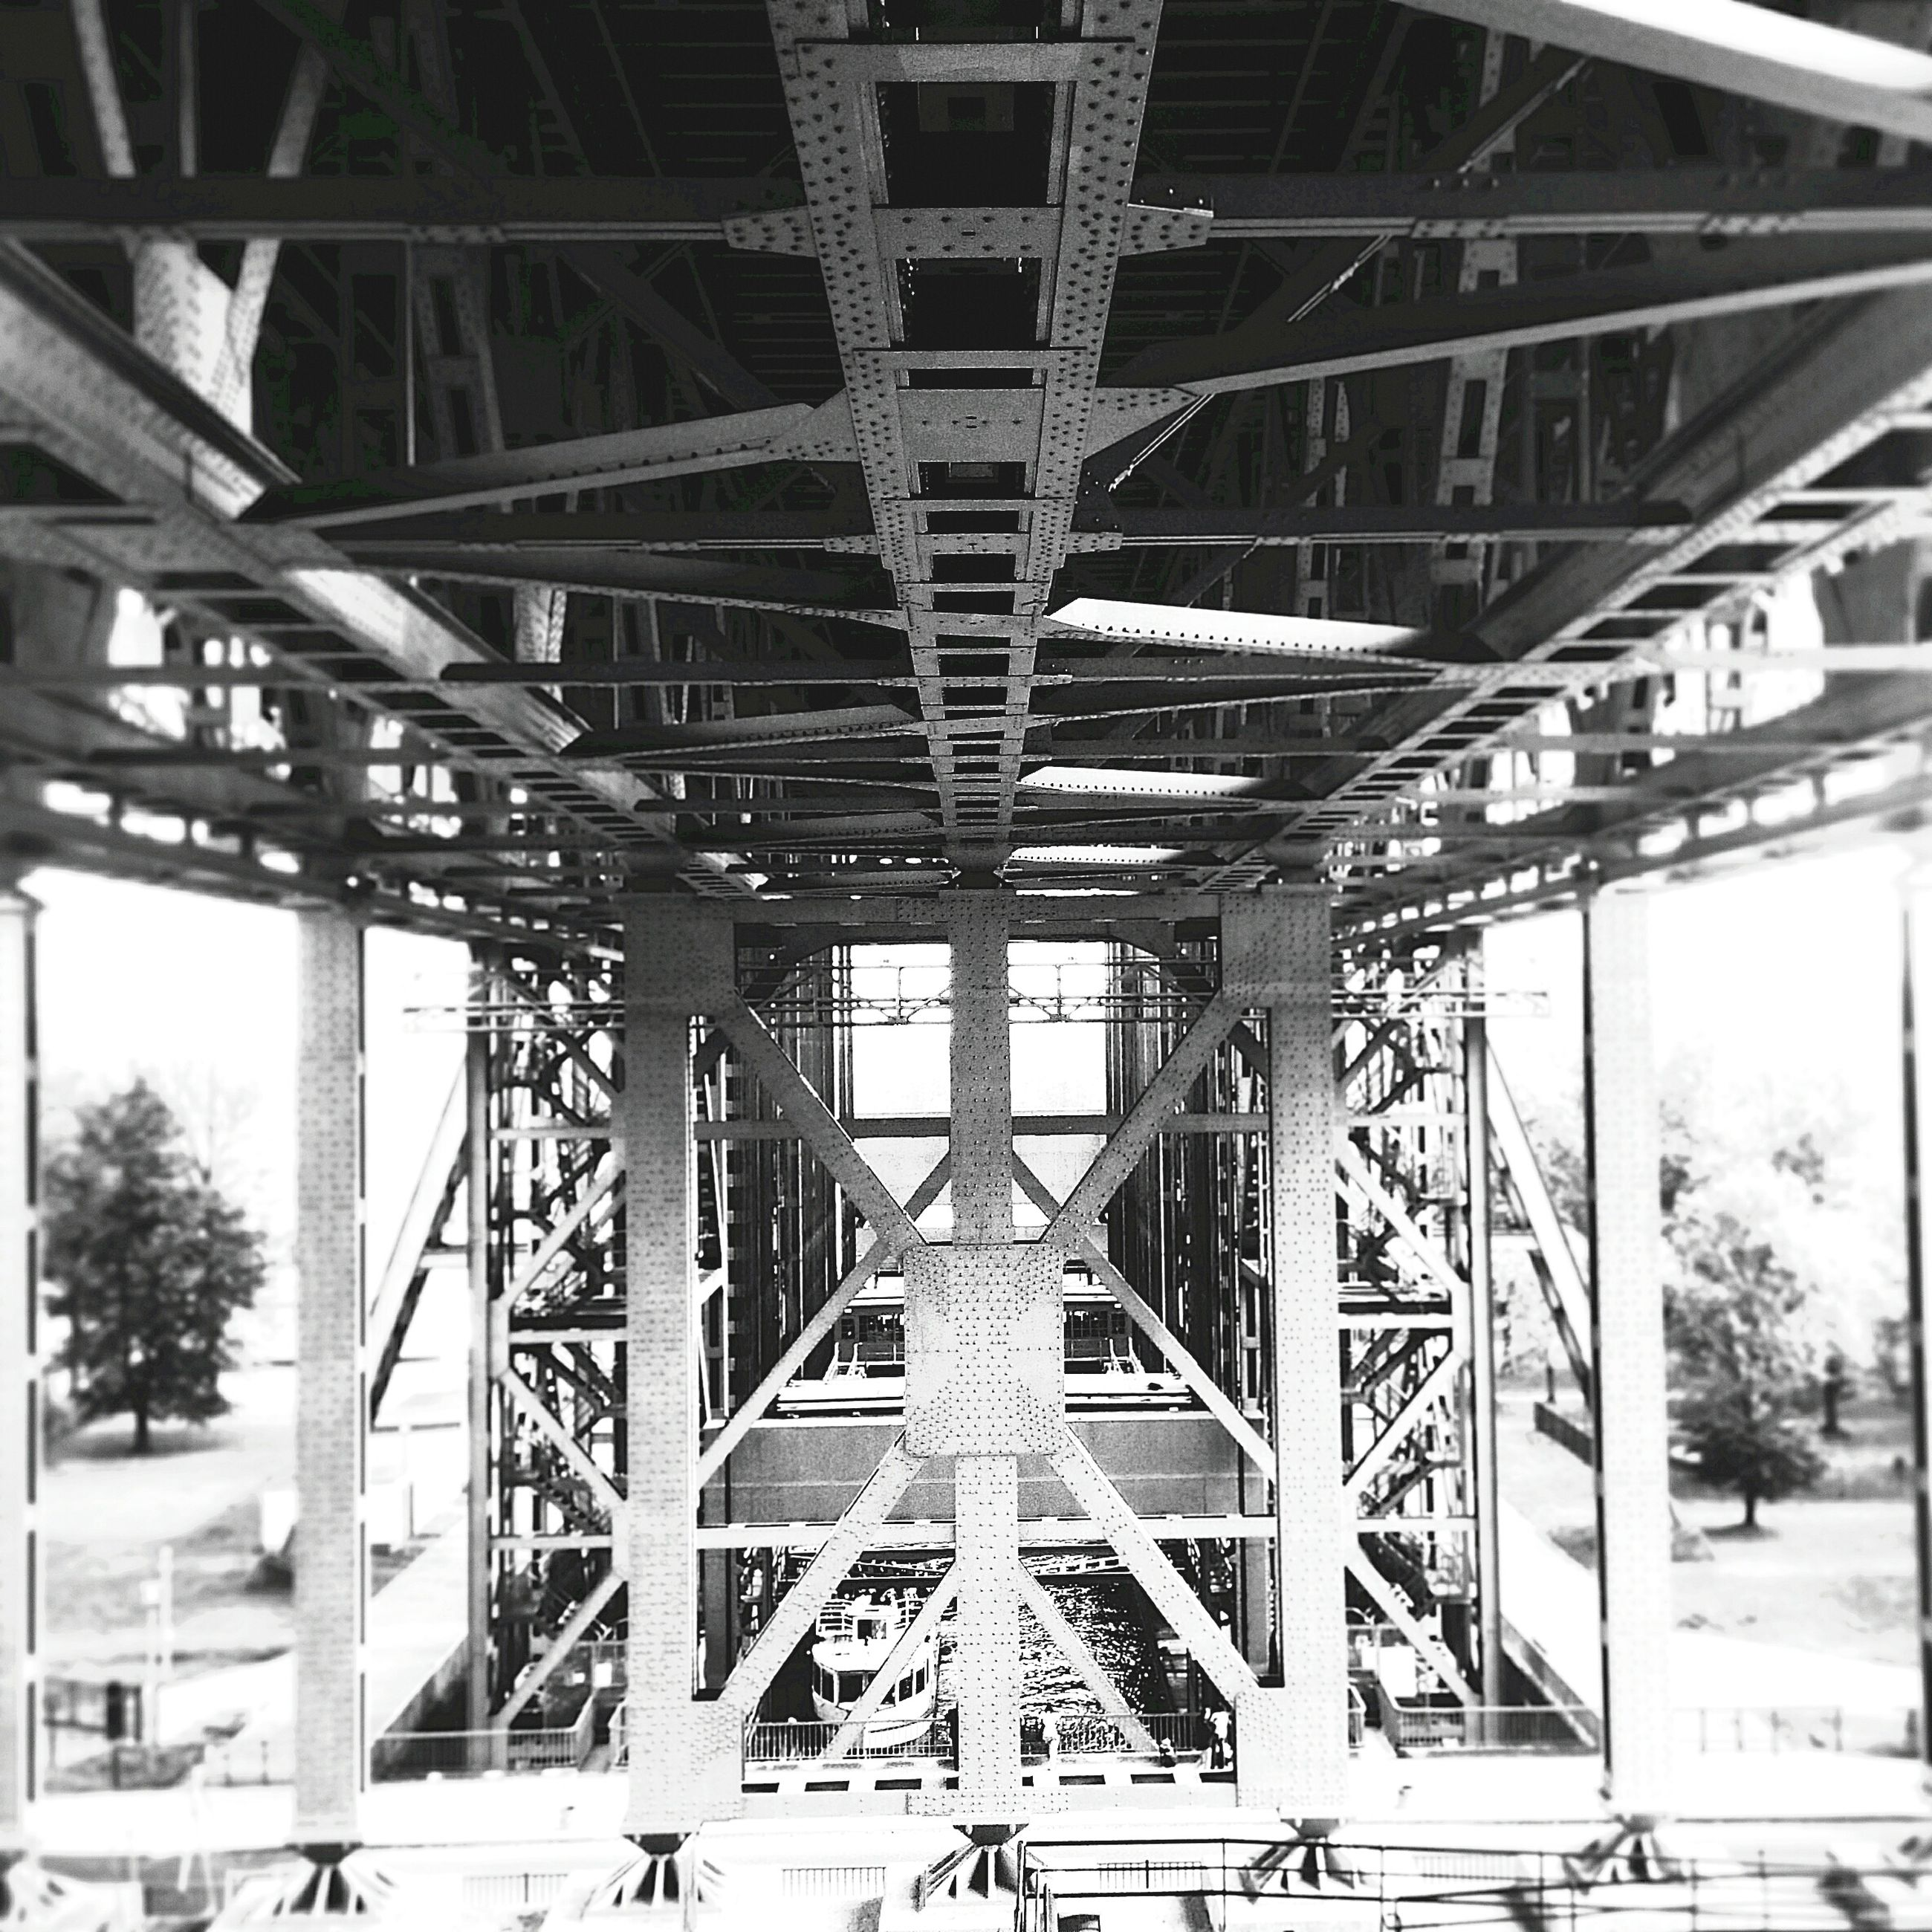 architecture, built structure, connection, bridge - man made structure, engineering, architectural column, bridge, support, low angle view, metal, arch, column, indoors, railing, day, no people, sky, metallic, long, sunlight